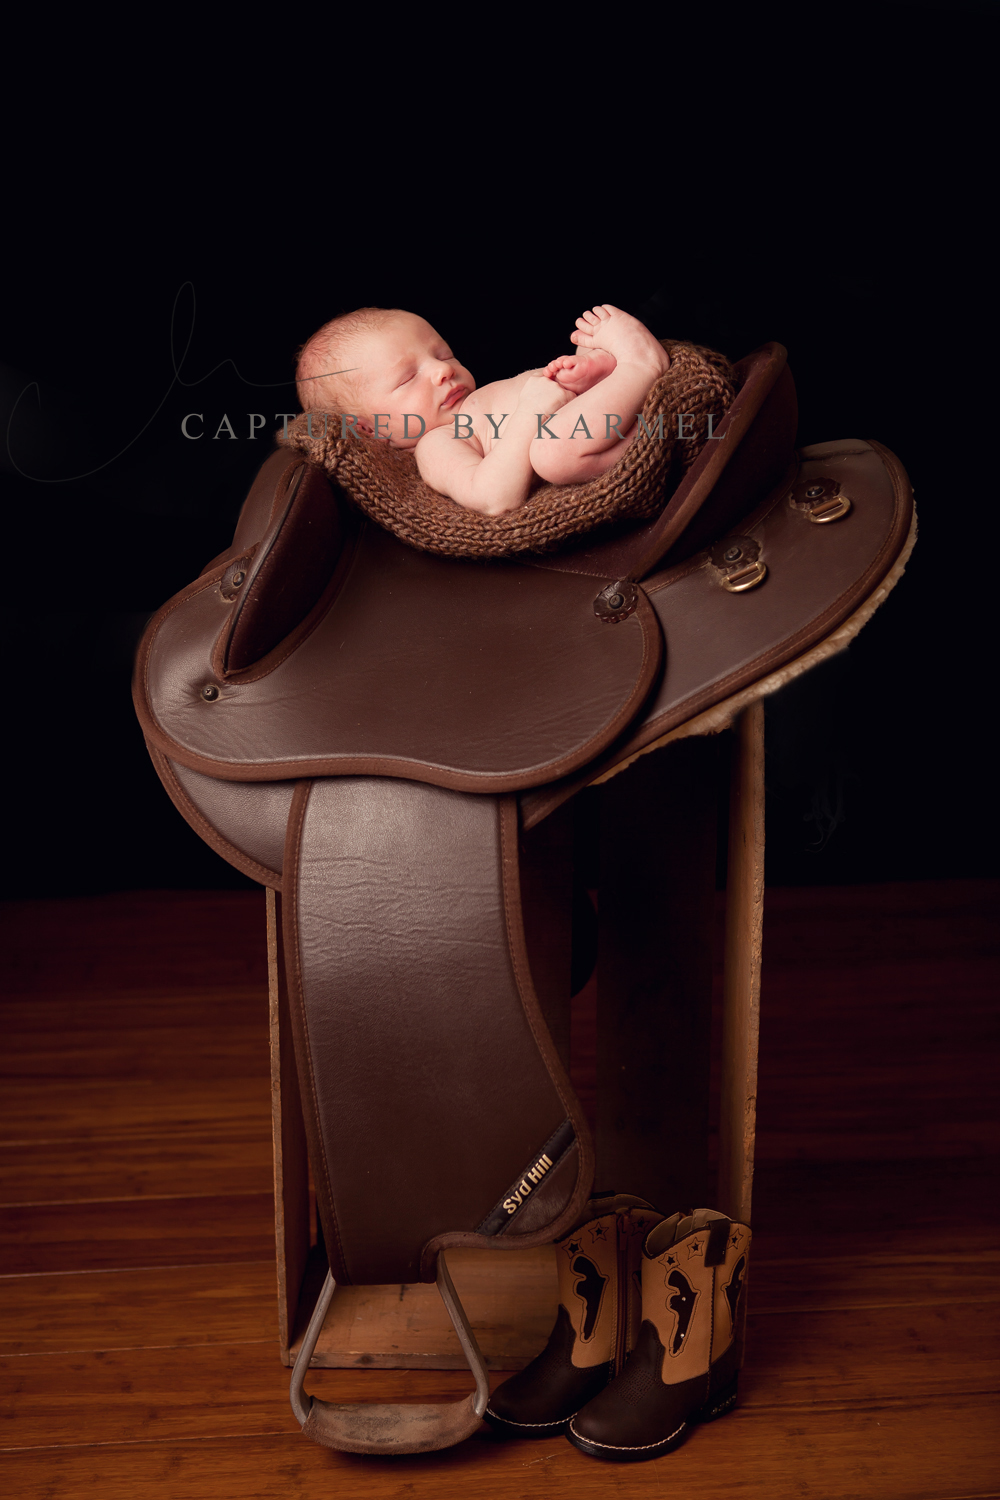 newborn baby on saddle